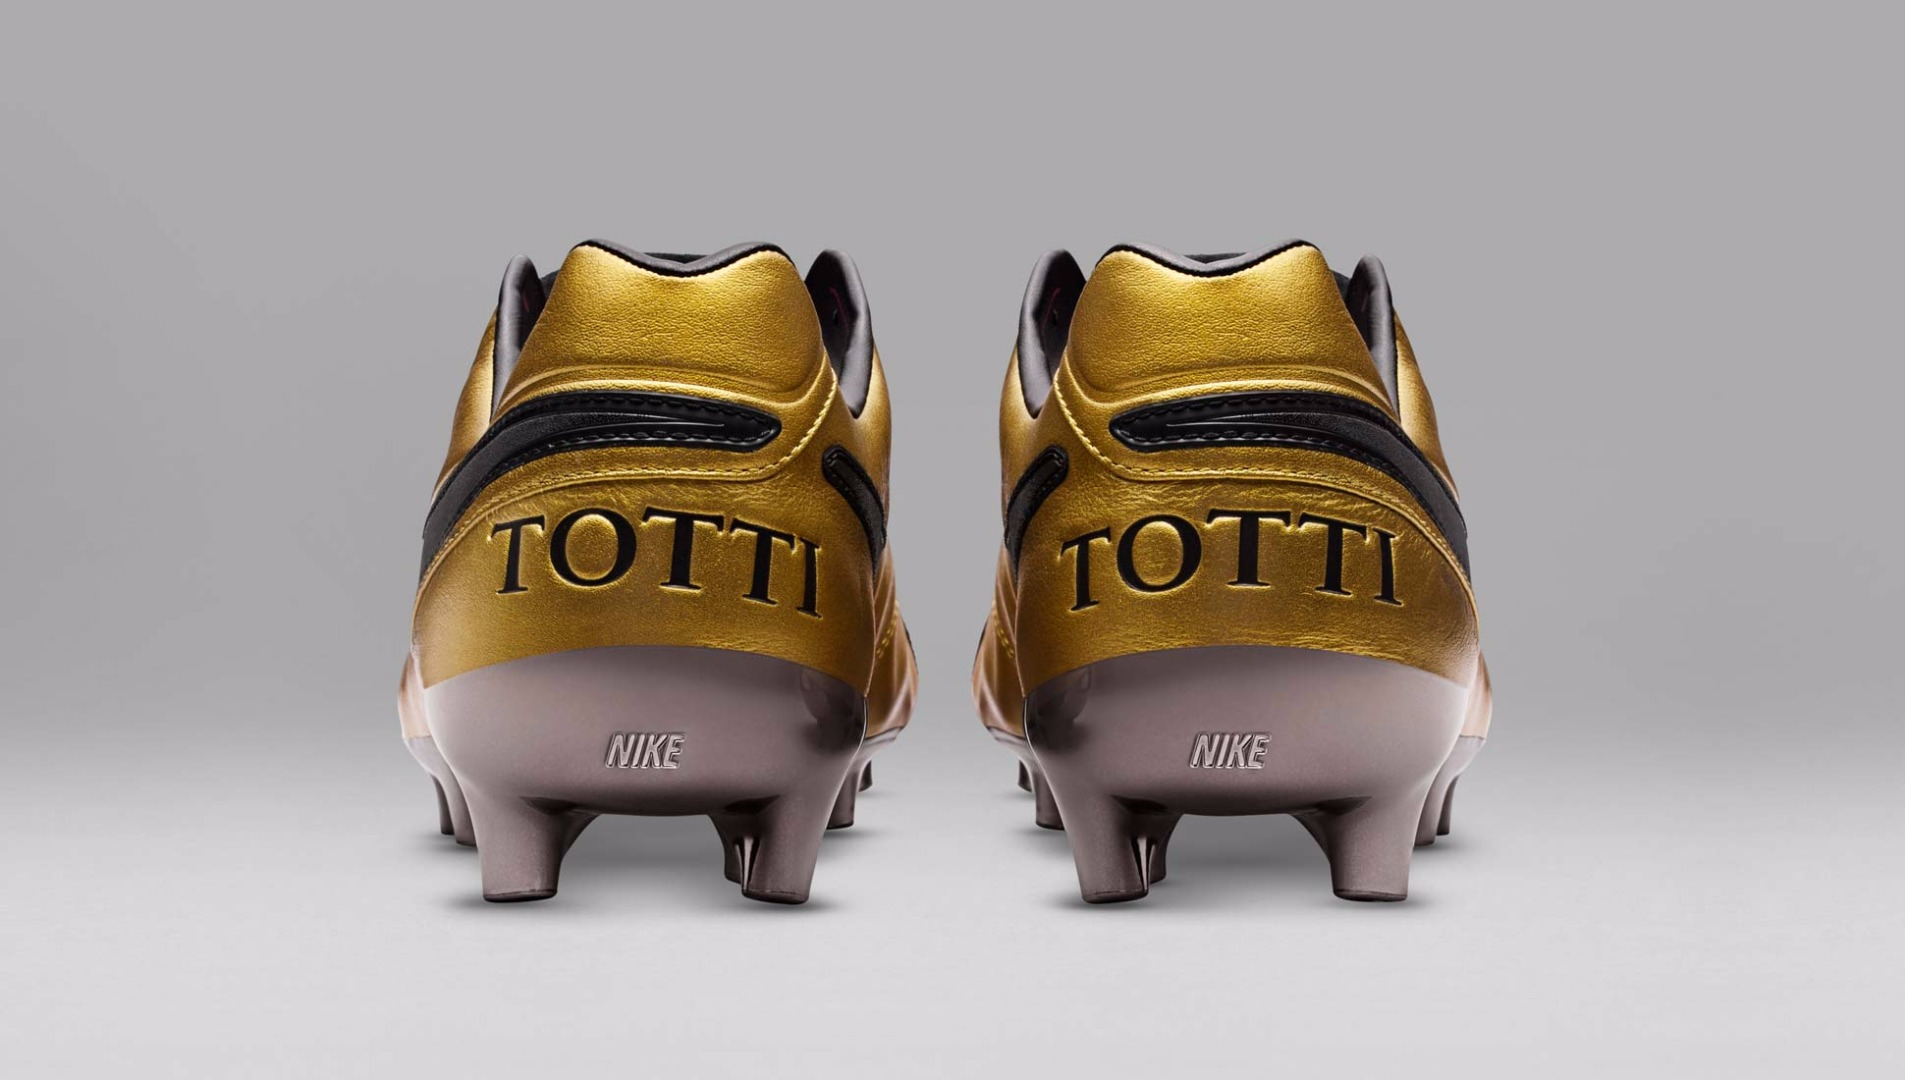 detailed look a4061 406ef Nike Tiempo Legend Totti Football Boots - SoccerBible